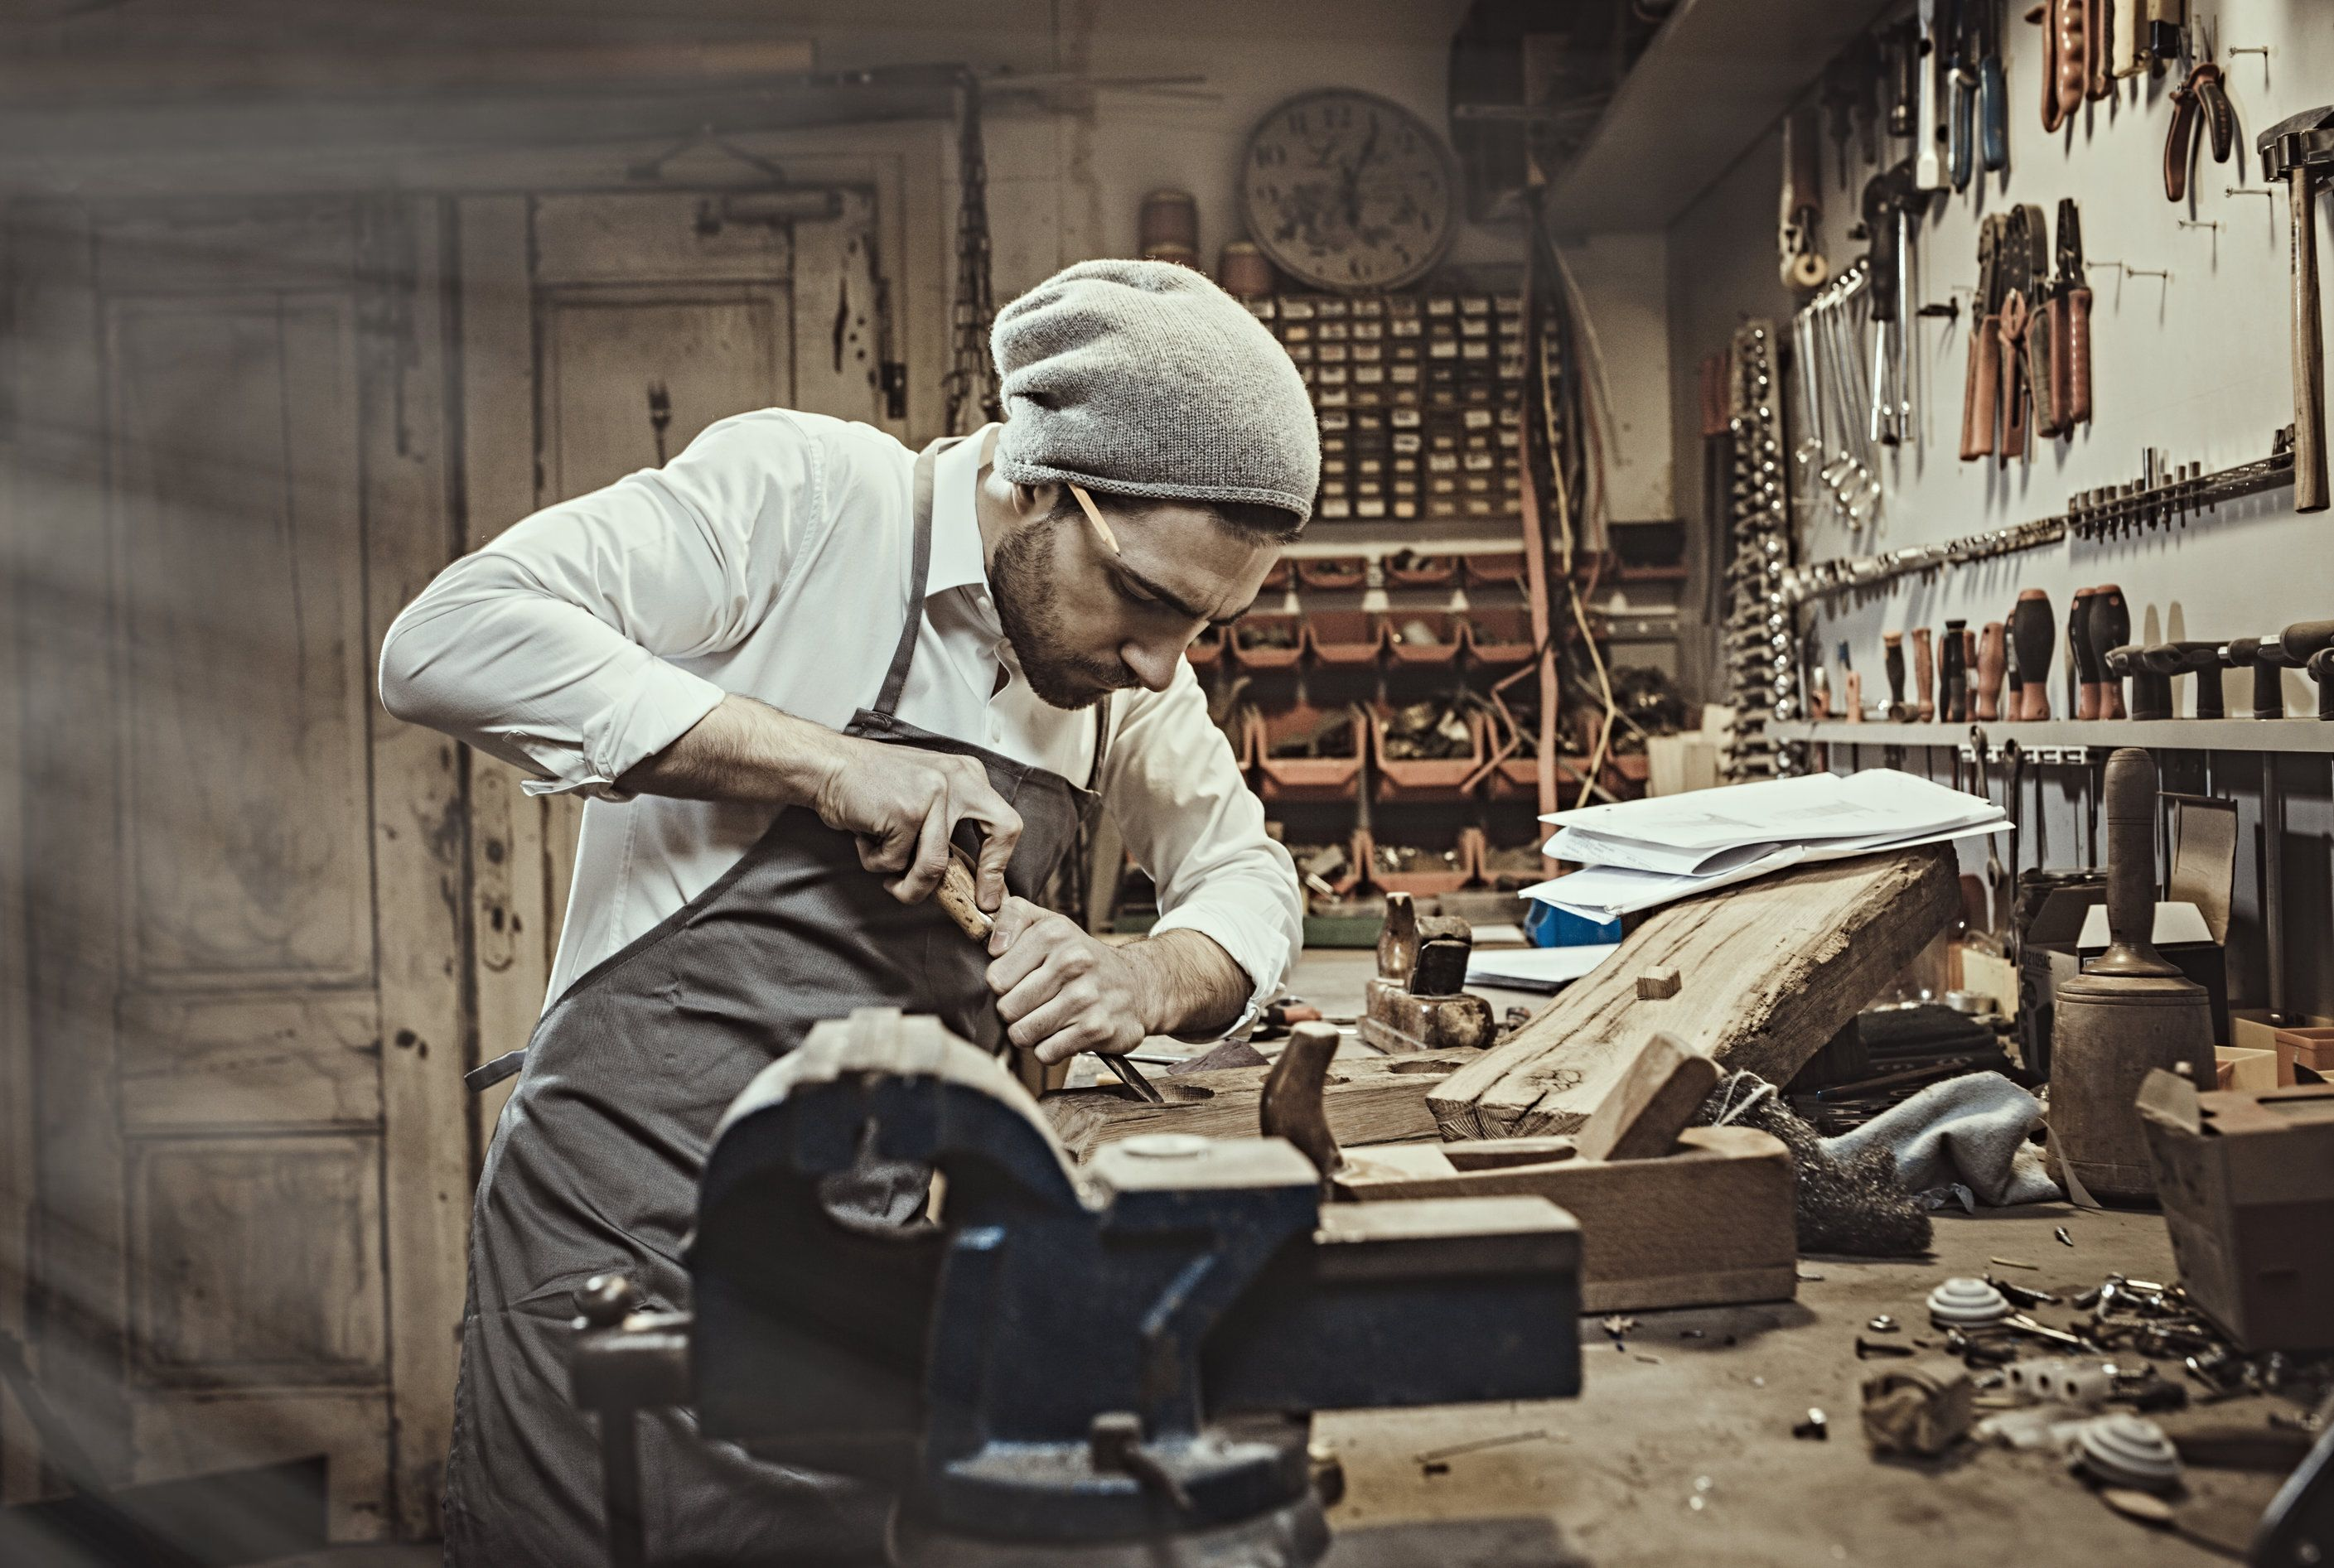 Artisans Painstakingly Taking The Time To Create Unique Products